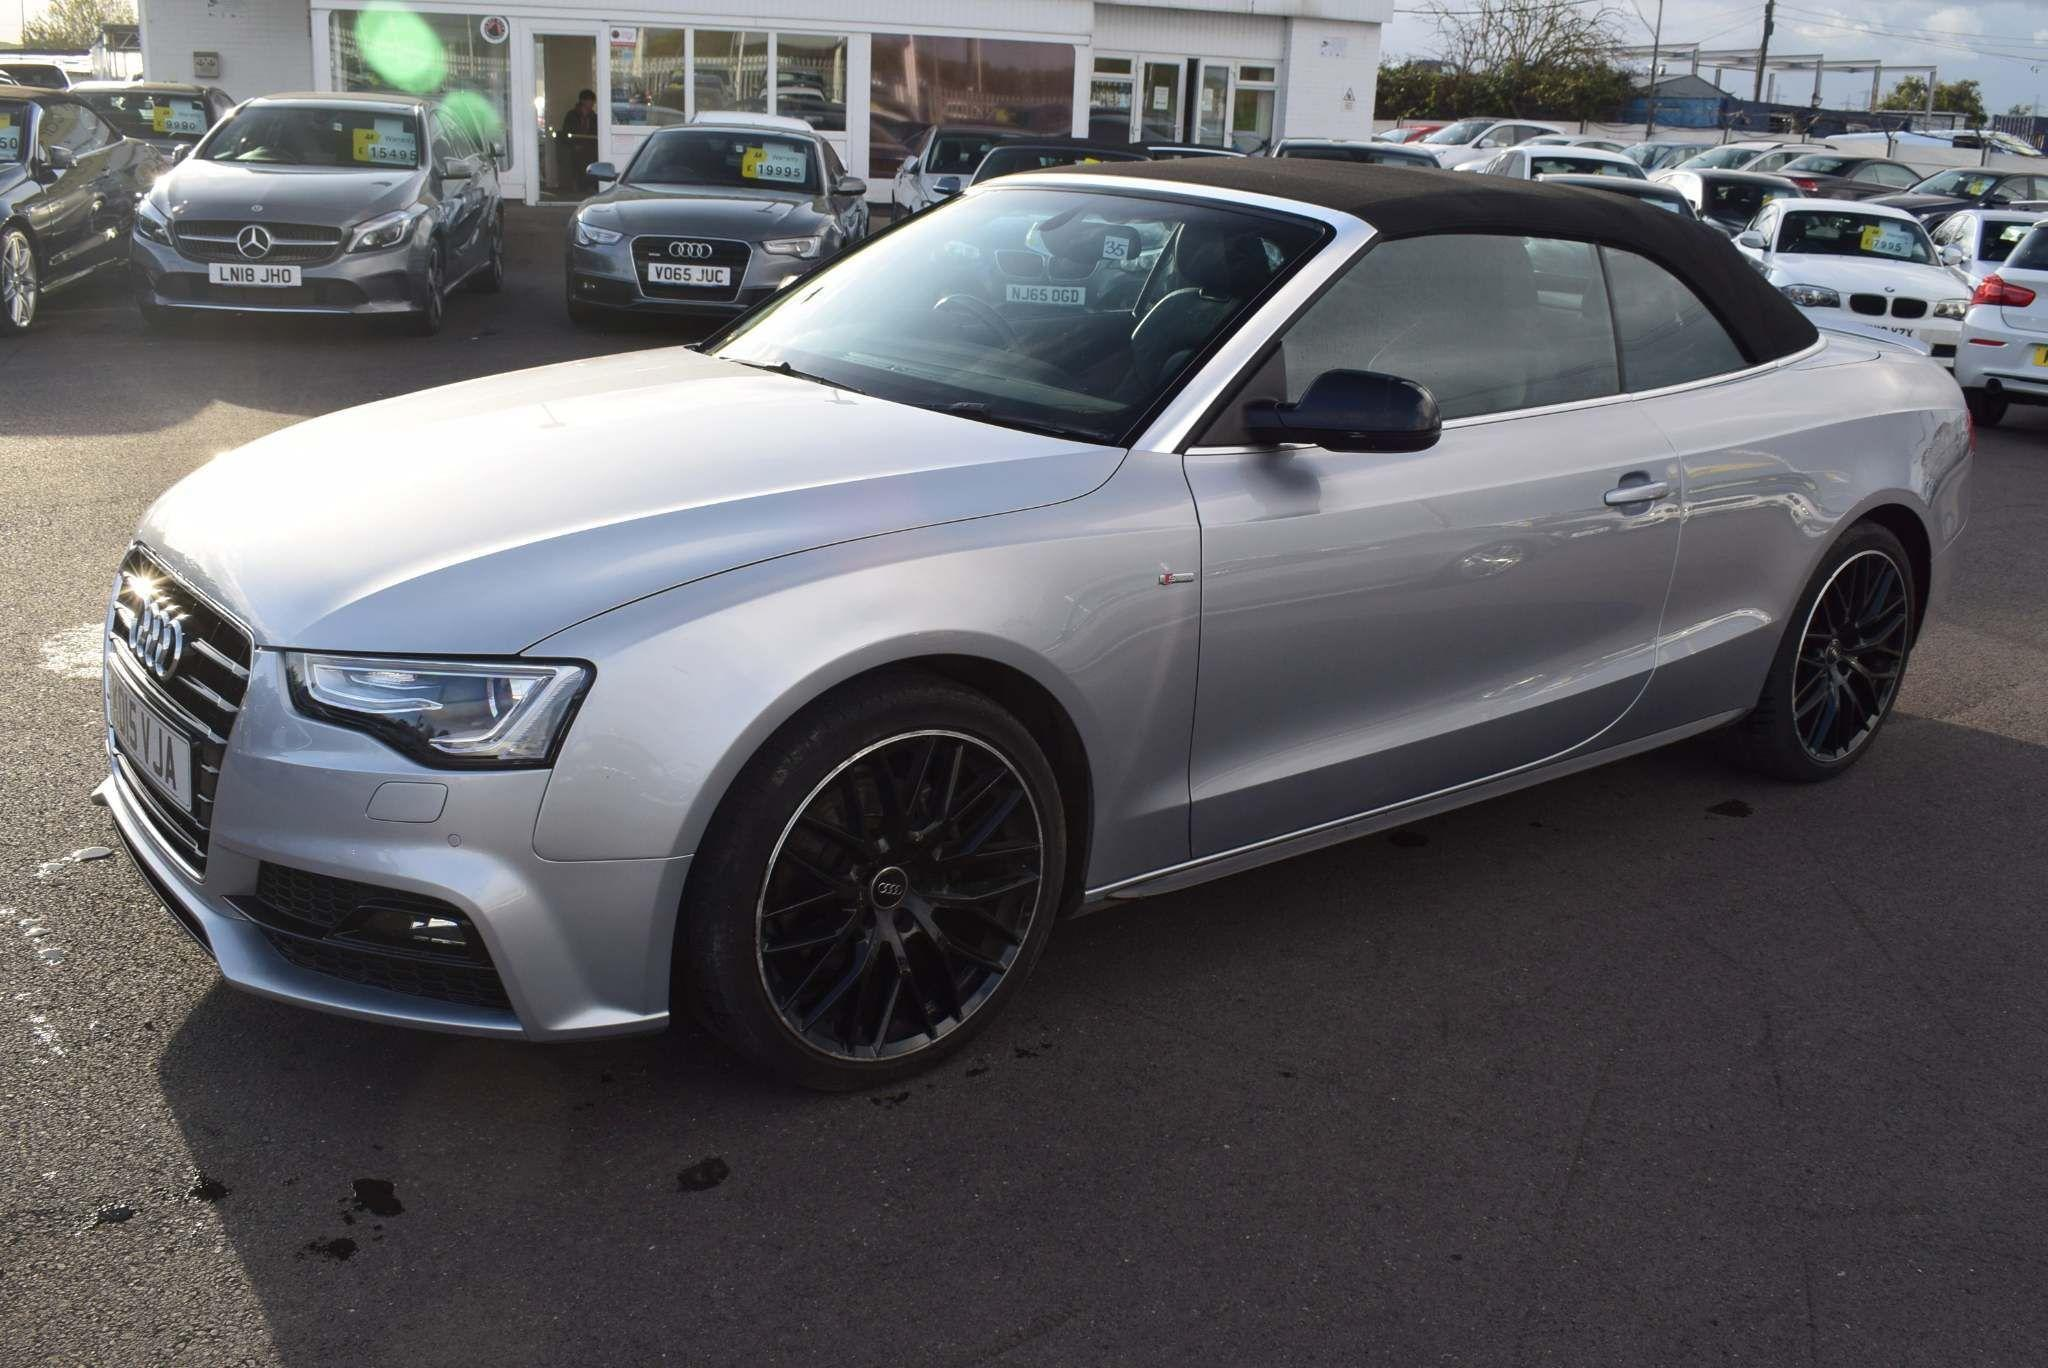 Audi A5 Cabriolet 2.0 TDI S line Special Edition Plus Cabriolet 2dr Convertible Diesel Silver